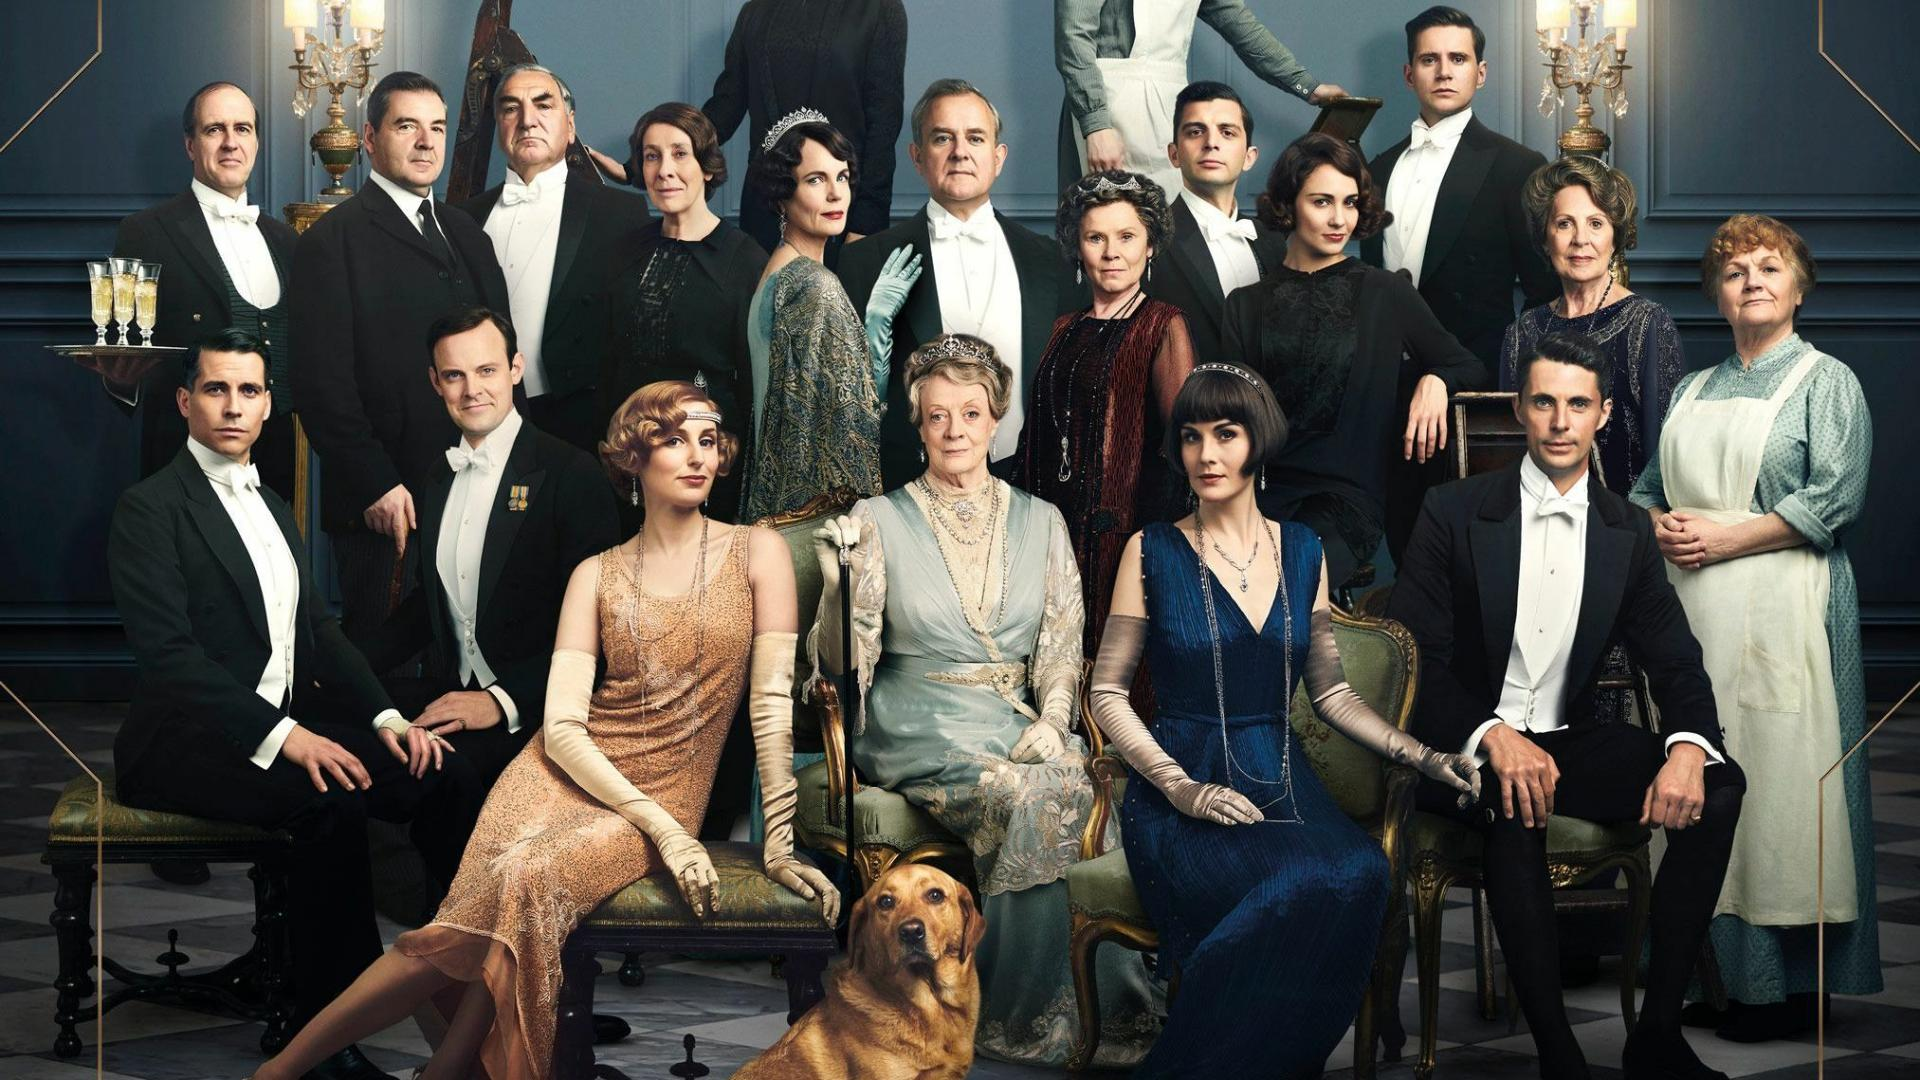 Downton Abbey Movie Will Leave The Door Open For A Sequel Telly Visions